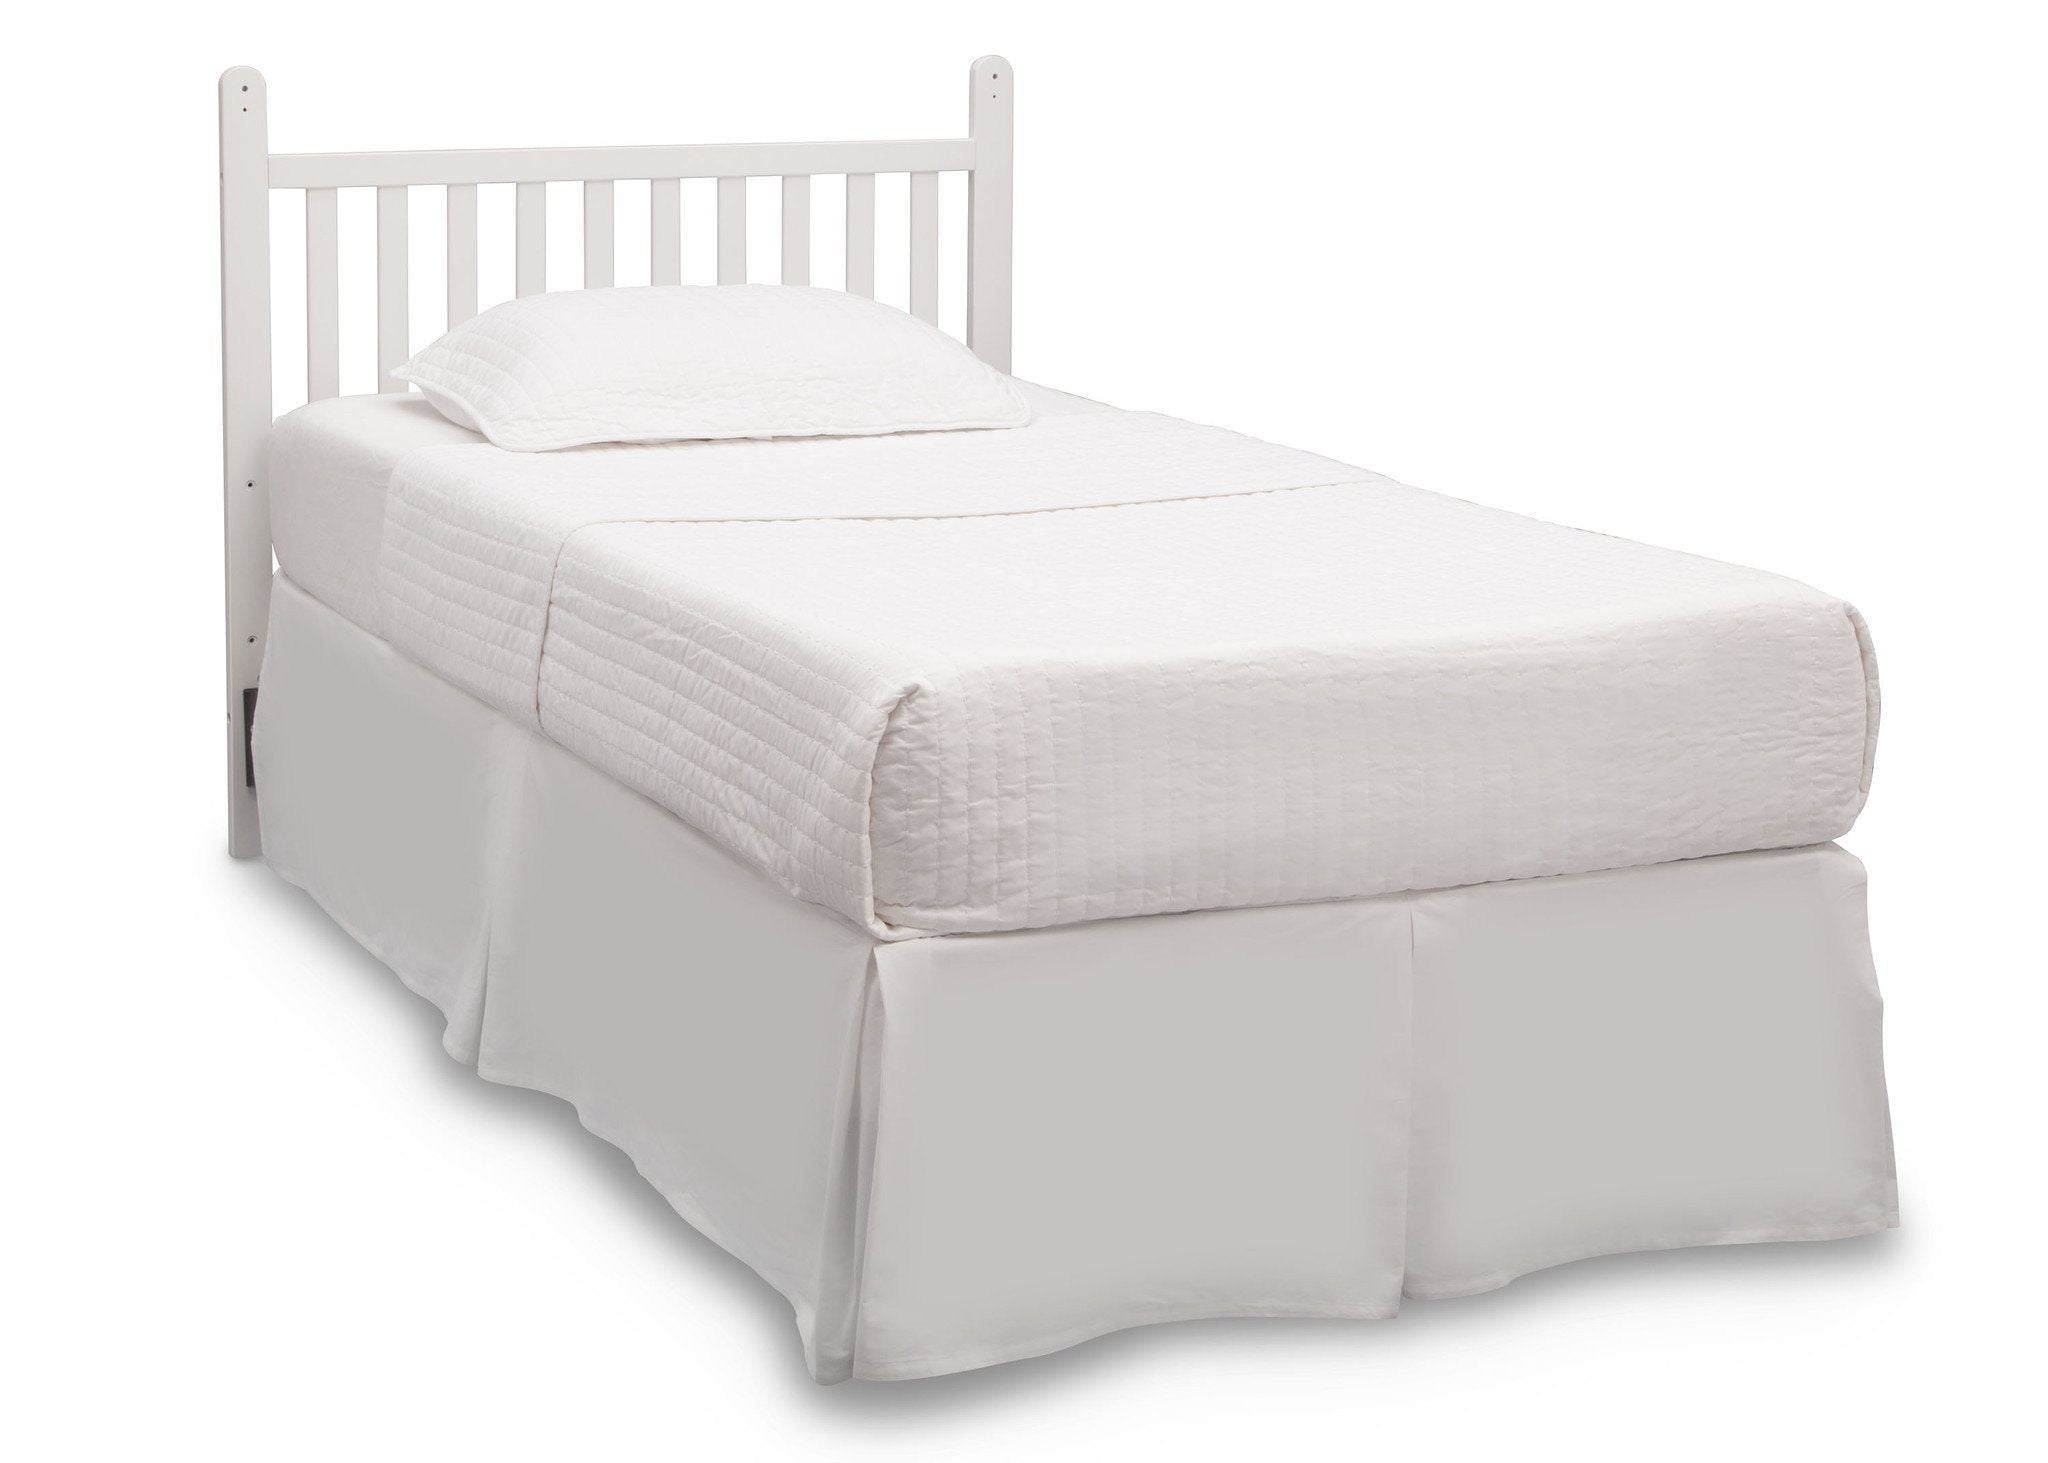 Delta Children Bianca White (130) Classic Mini Crib with Mattress toddler bed conversion side view a5a